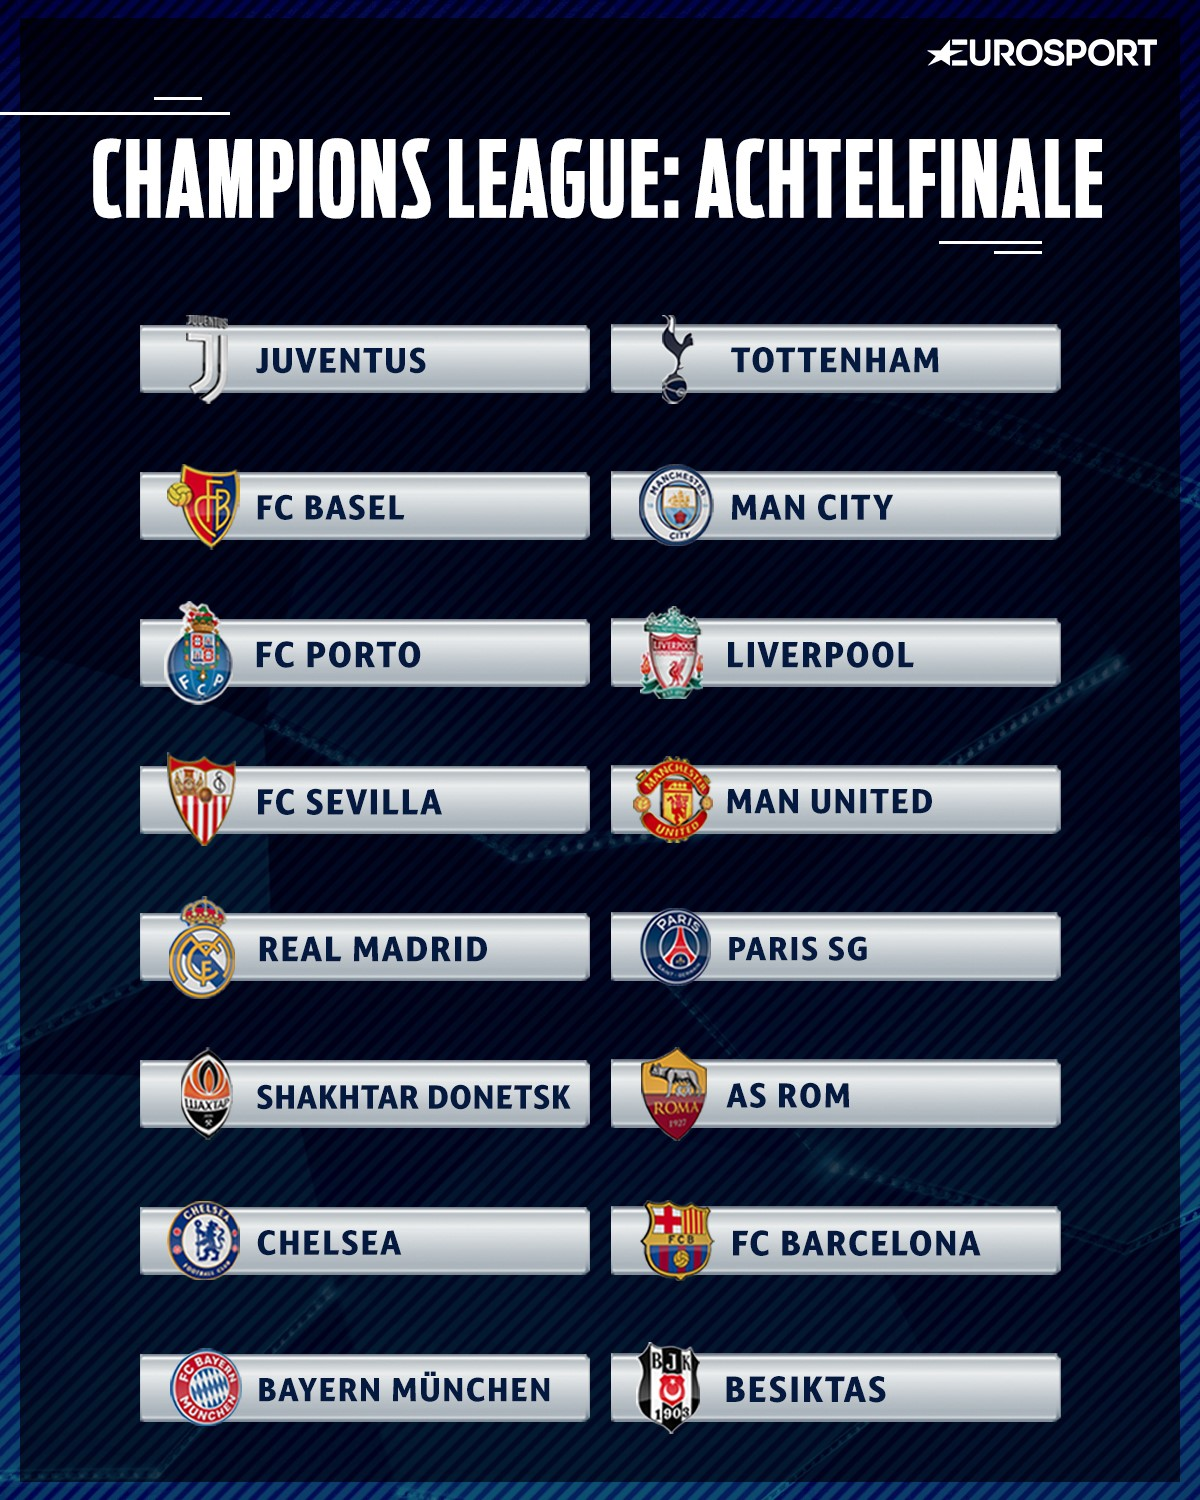 Champions League 2020 Achtelfinale